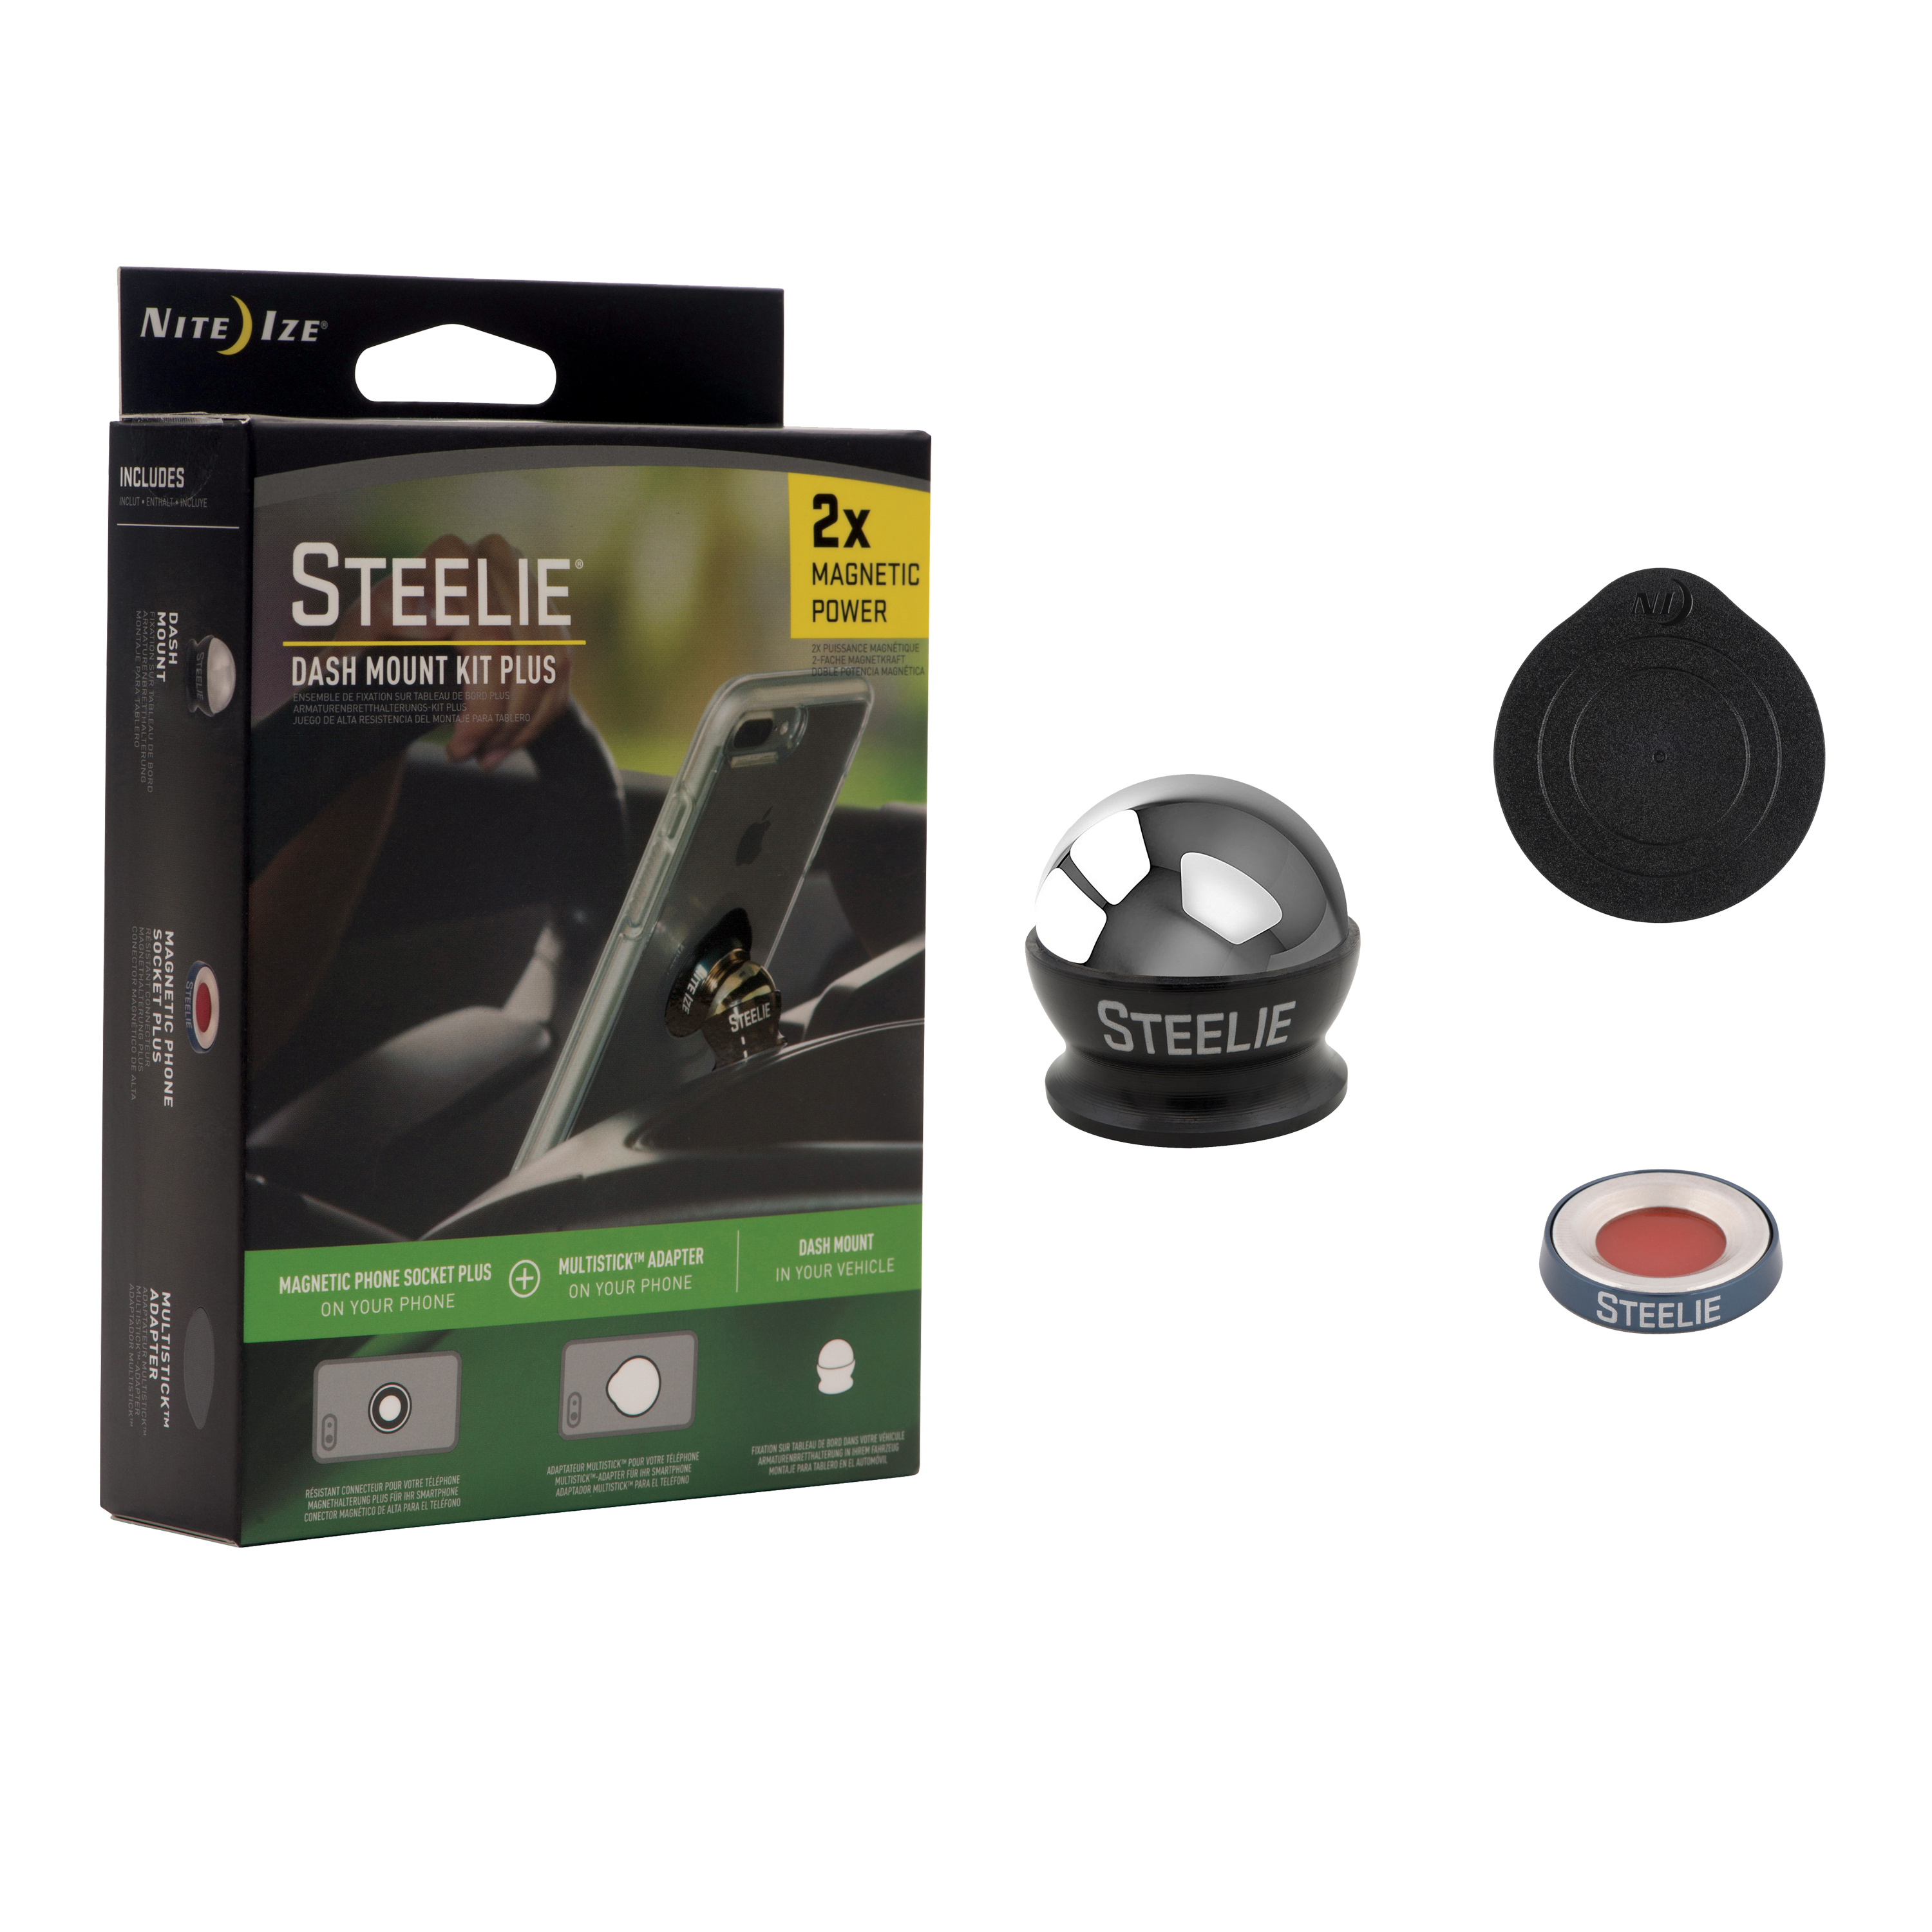 NITE IZE Steelie Dash Mount Kit Plus